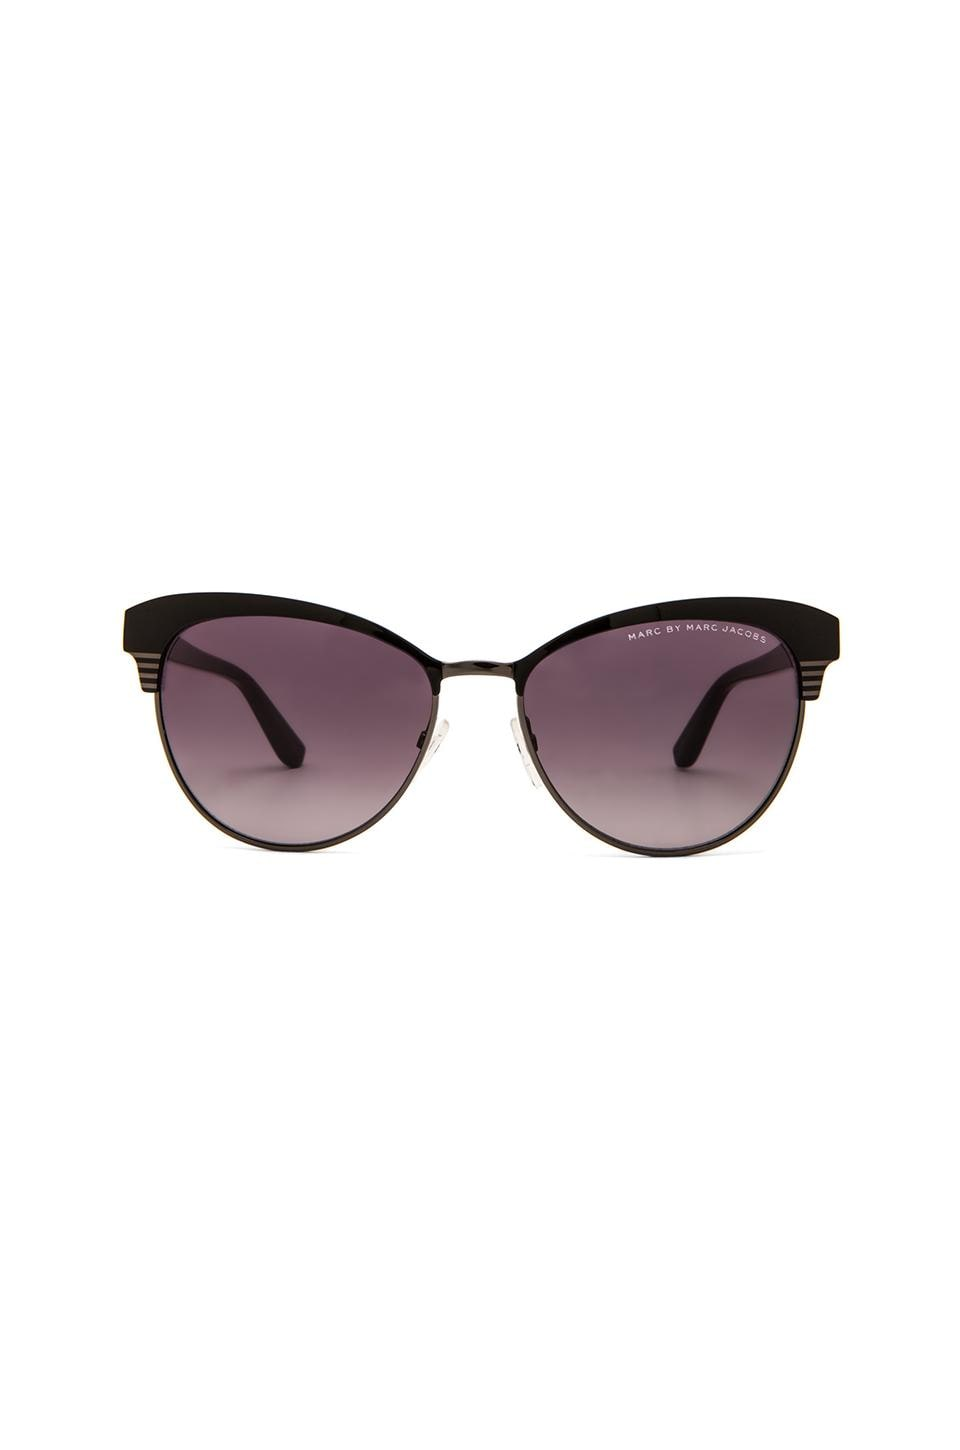 Marc by Marc Jacobs Metal Frame Cat Eye Sunglasses in Ruthenium